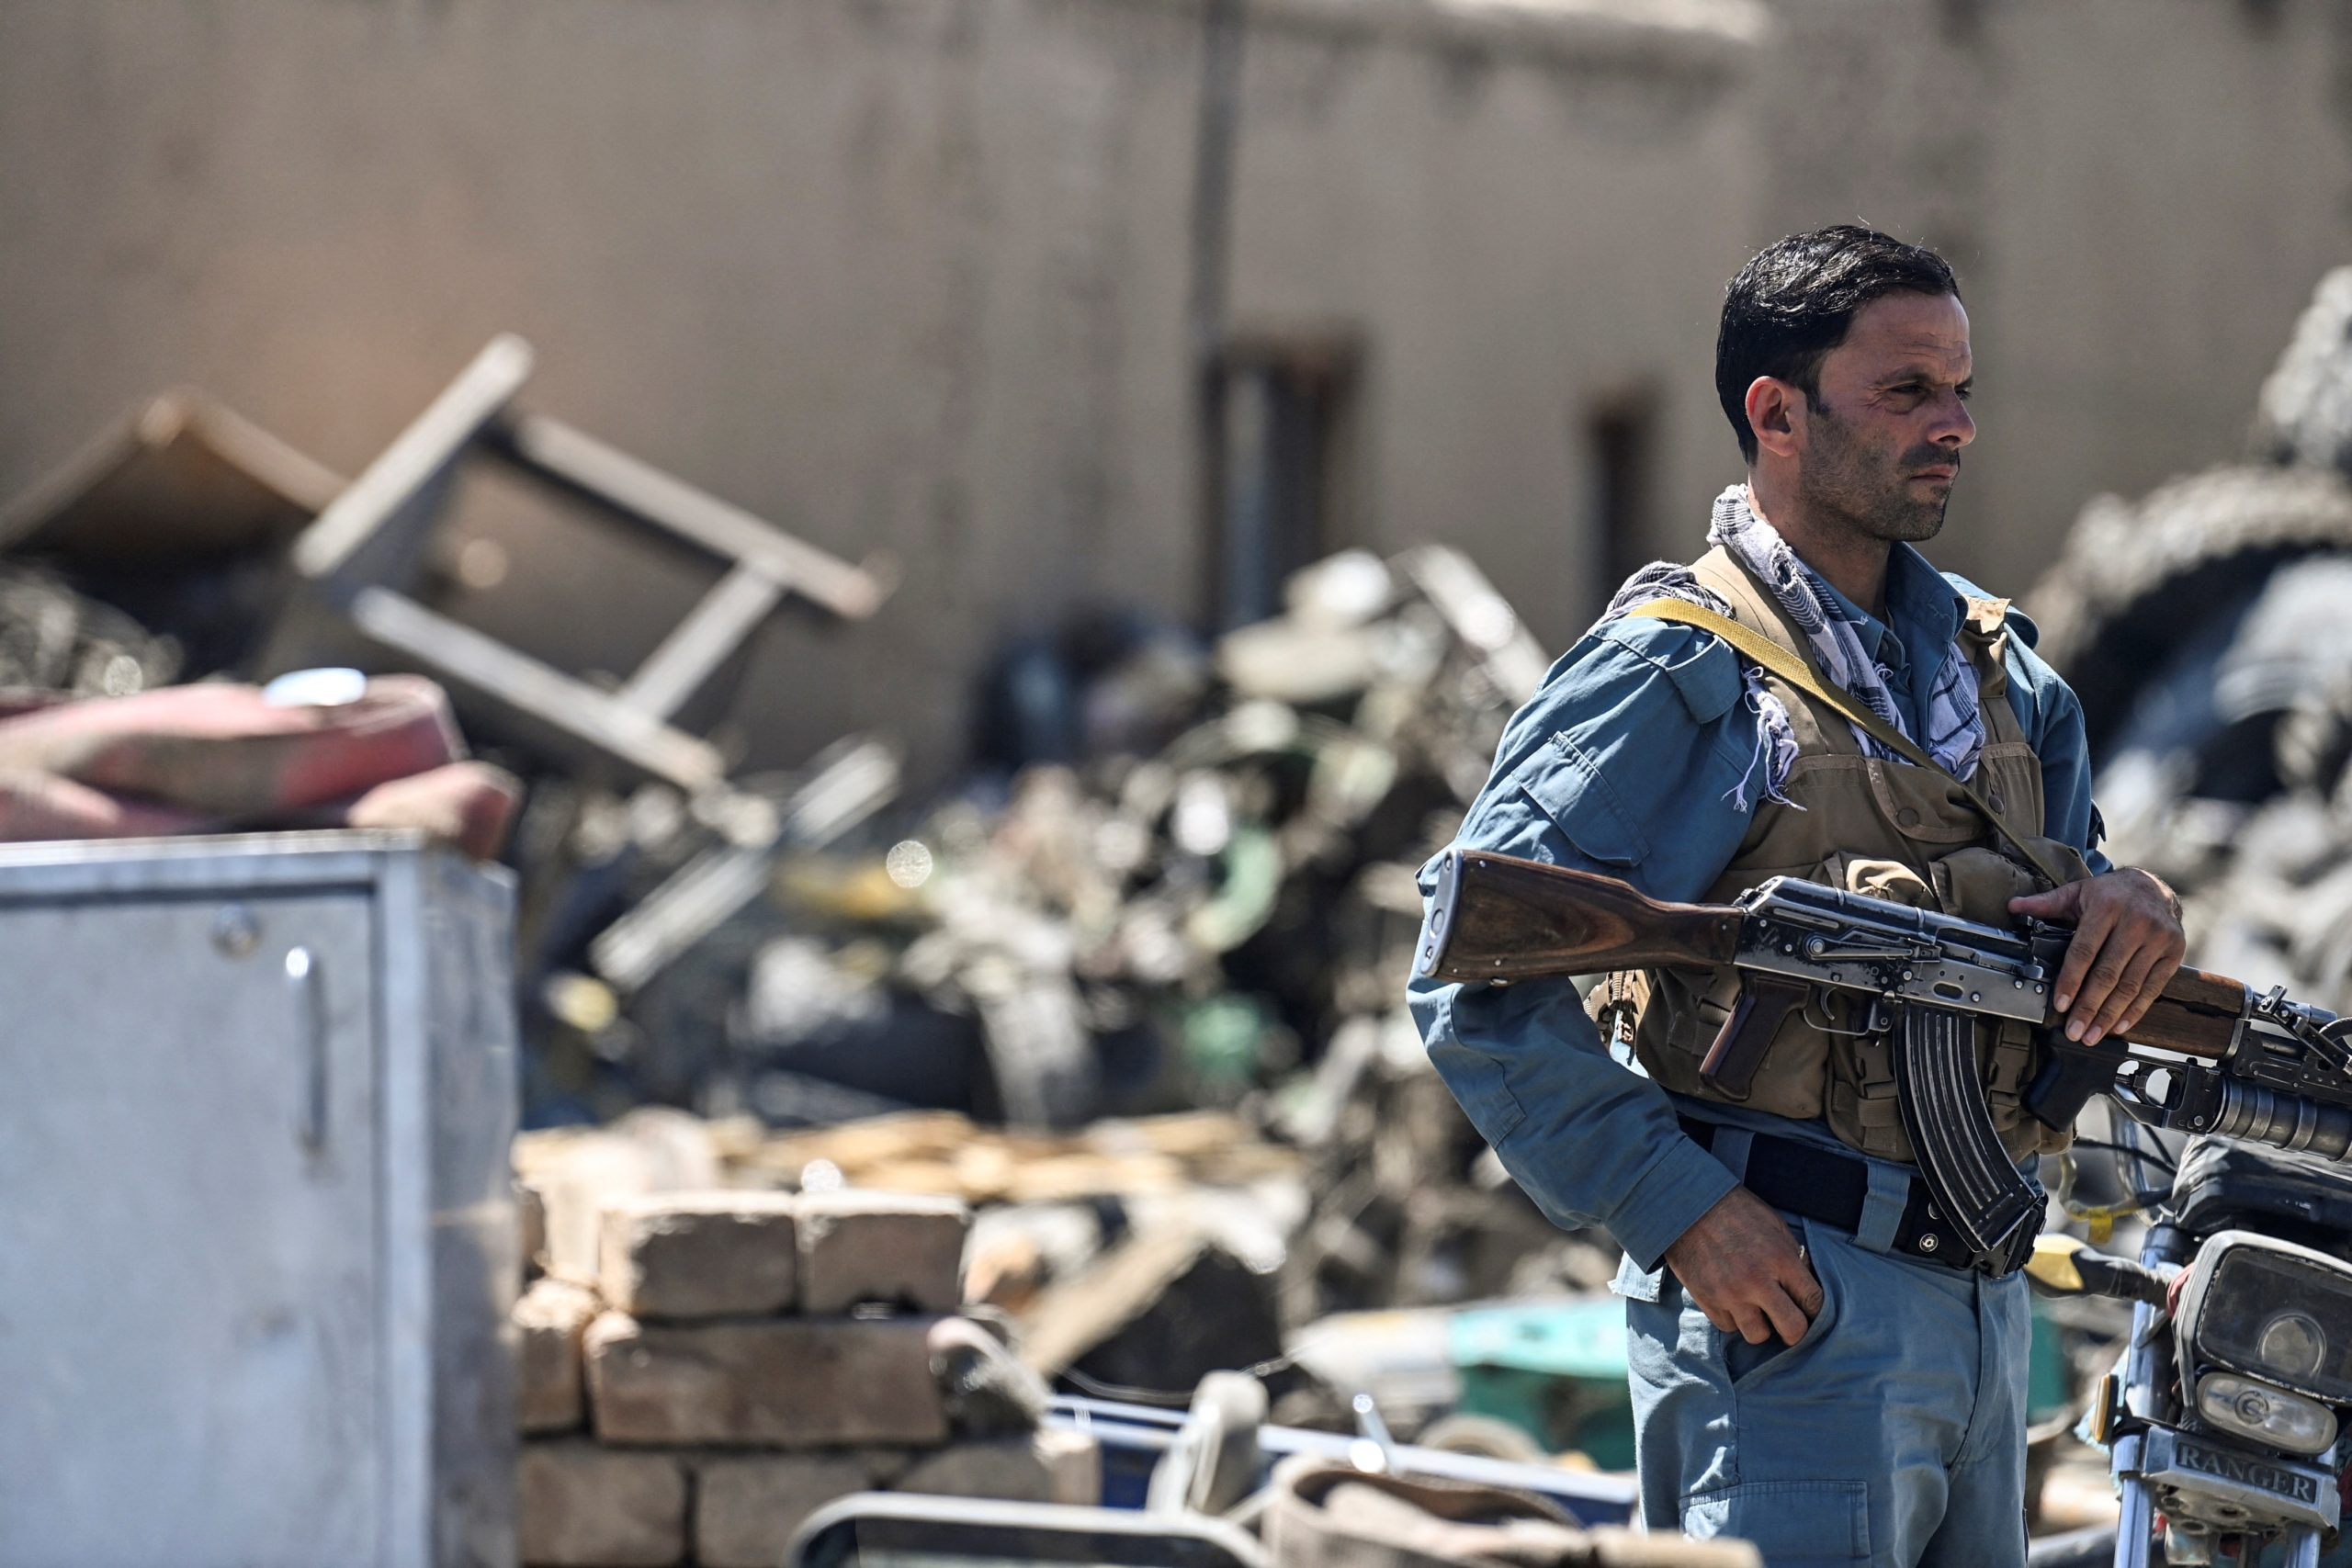 In this picture taken on June 17, 2021, a policeman stands guard at a junkyard near the Bagram Air Base in Bagram. (ADEK BERRY/AFP via Getty Images)